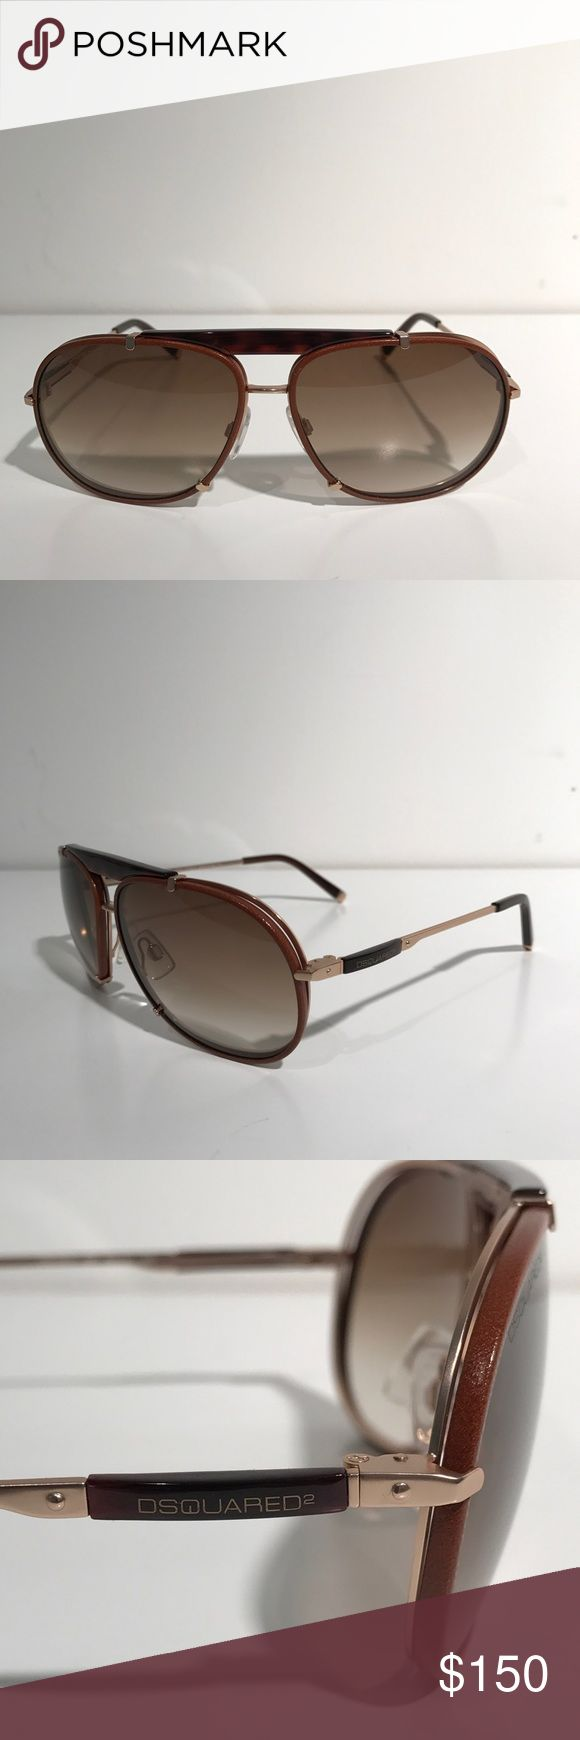 Dsquared2 Pablo Escobar Sunglasses Gold Brown Dsquared sunglasses new condition without box. Pablo Escobar edition. Made in Italy. DSQUARED Accessories Sunglasses